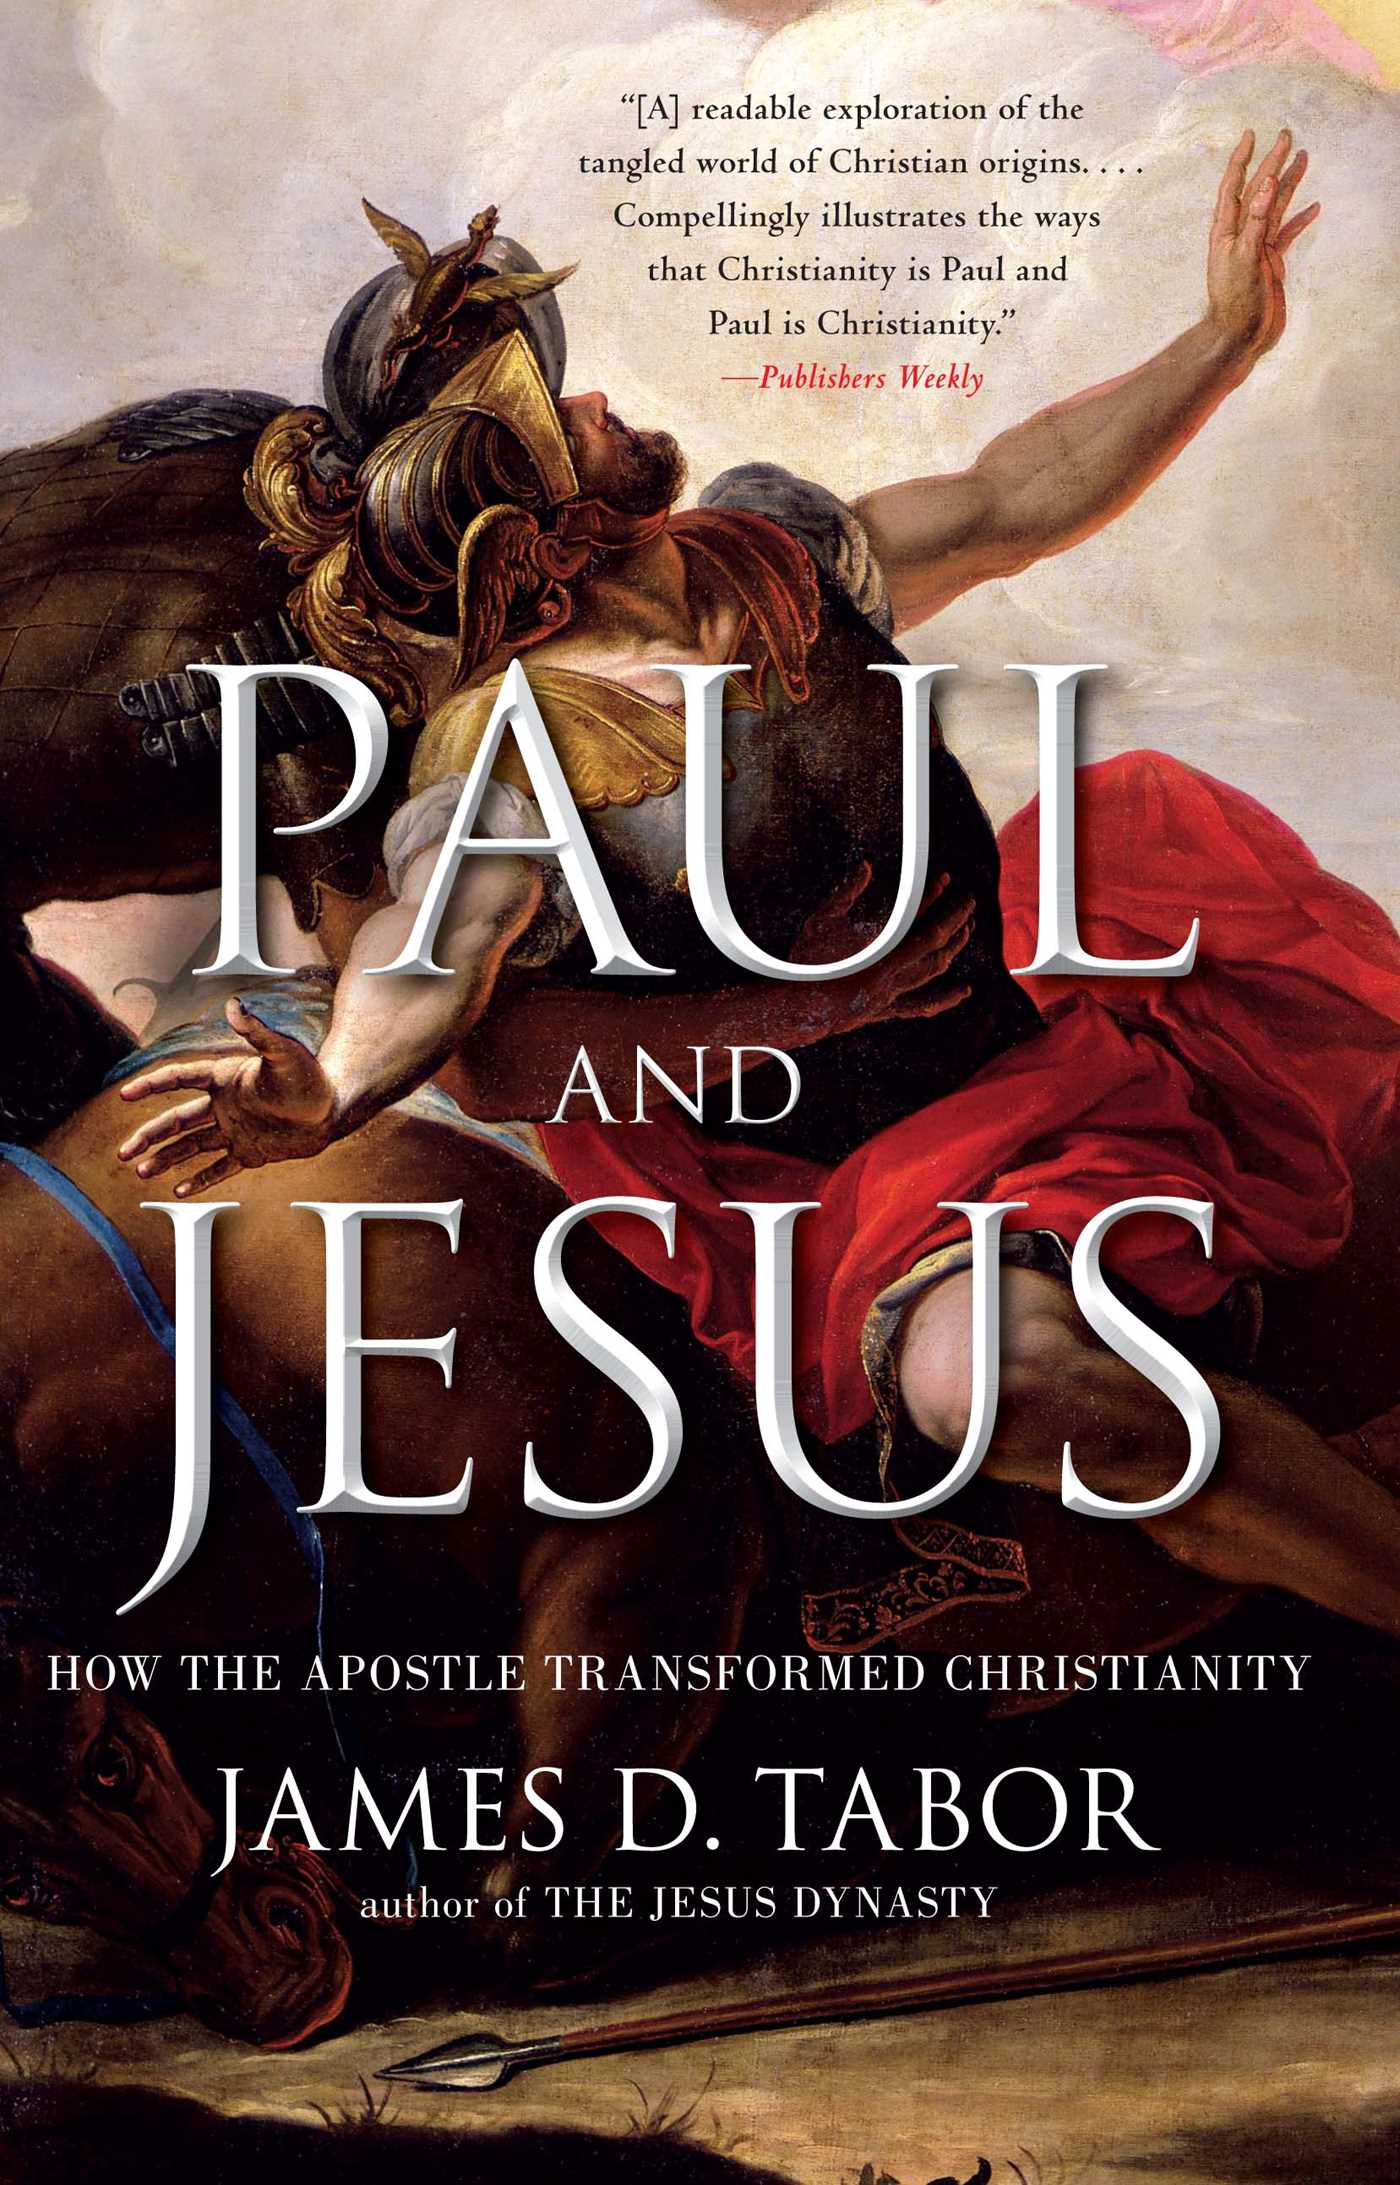 Paul-and-jesus-9781439123324_hr